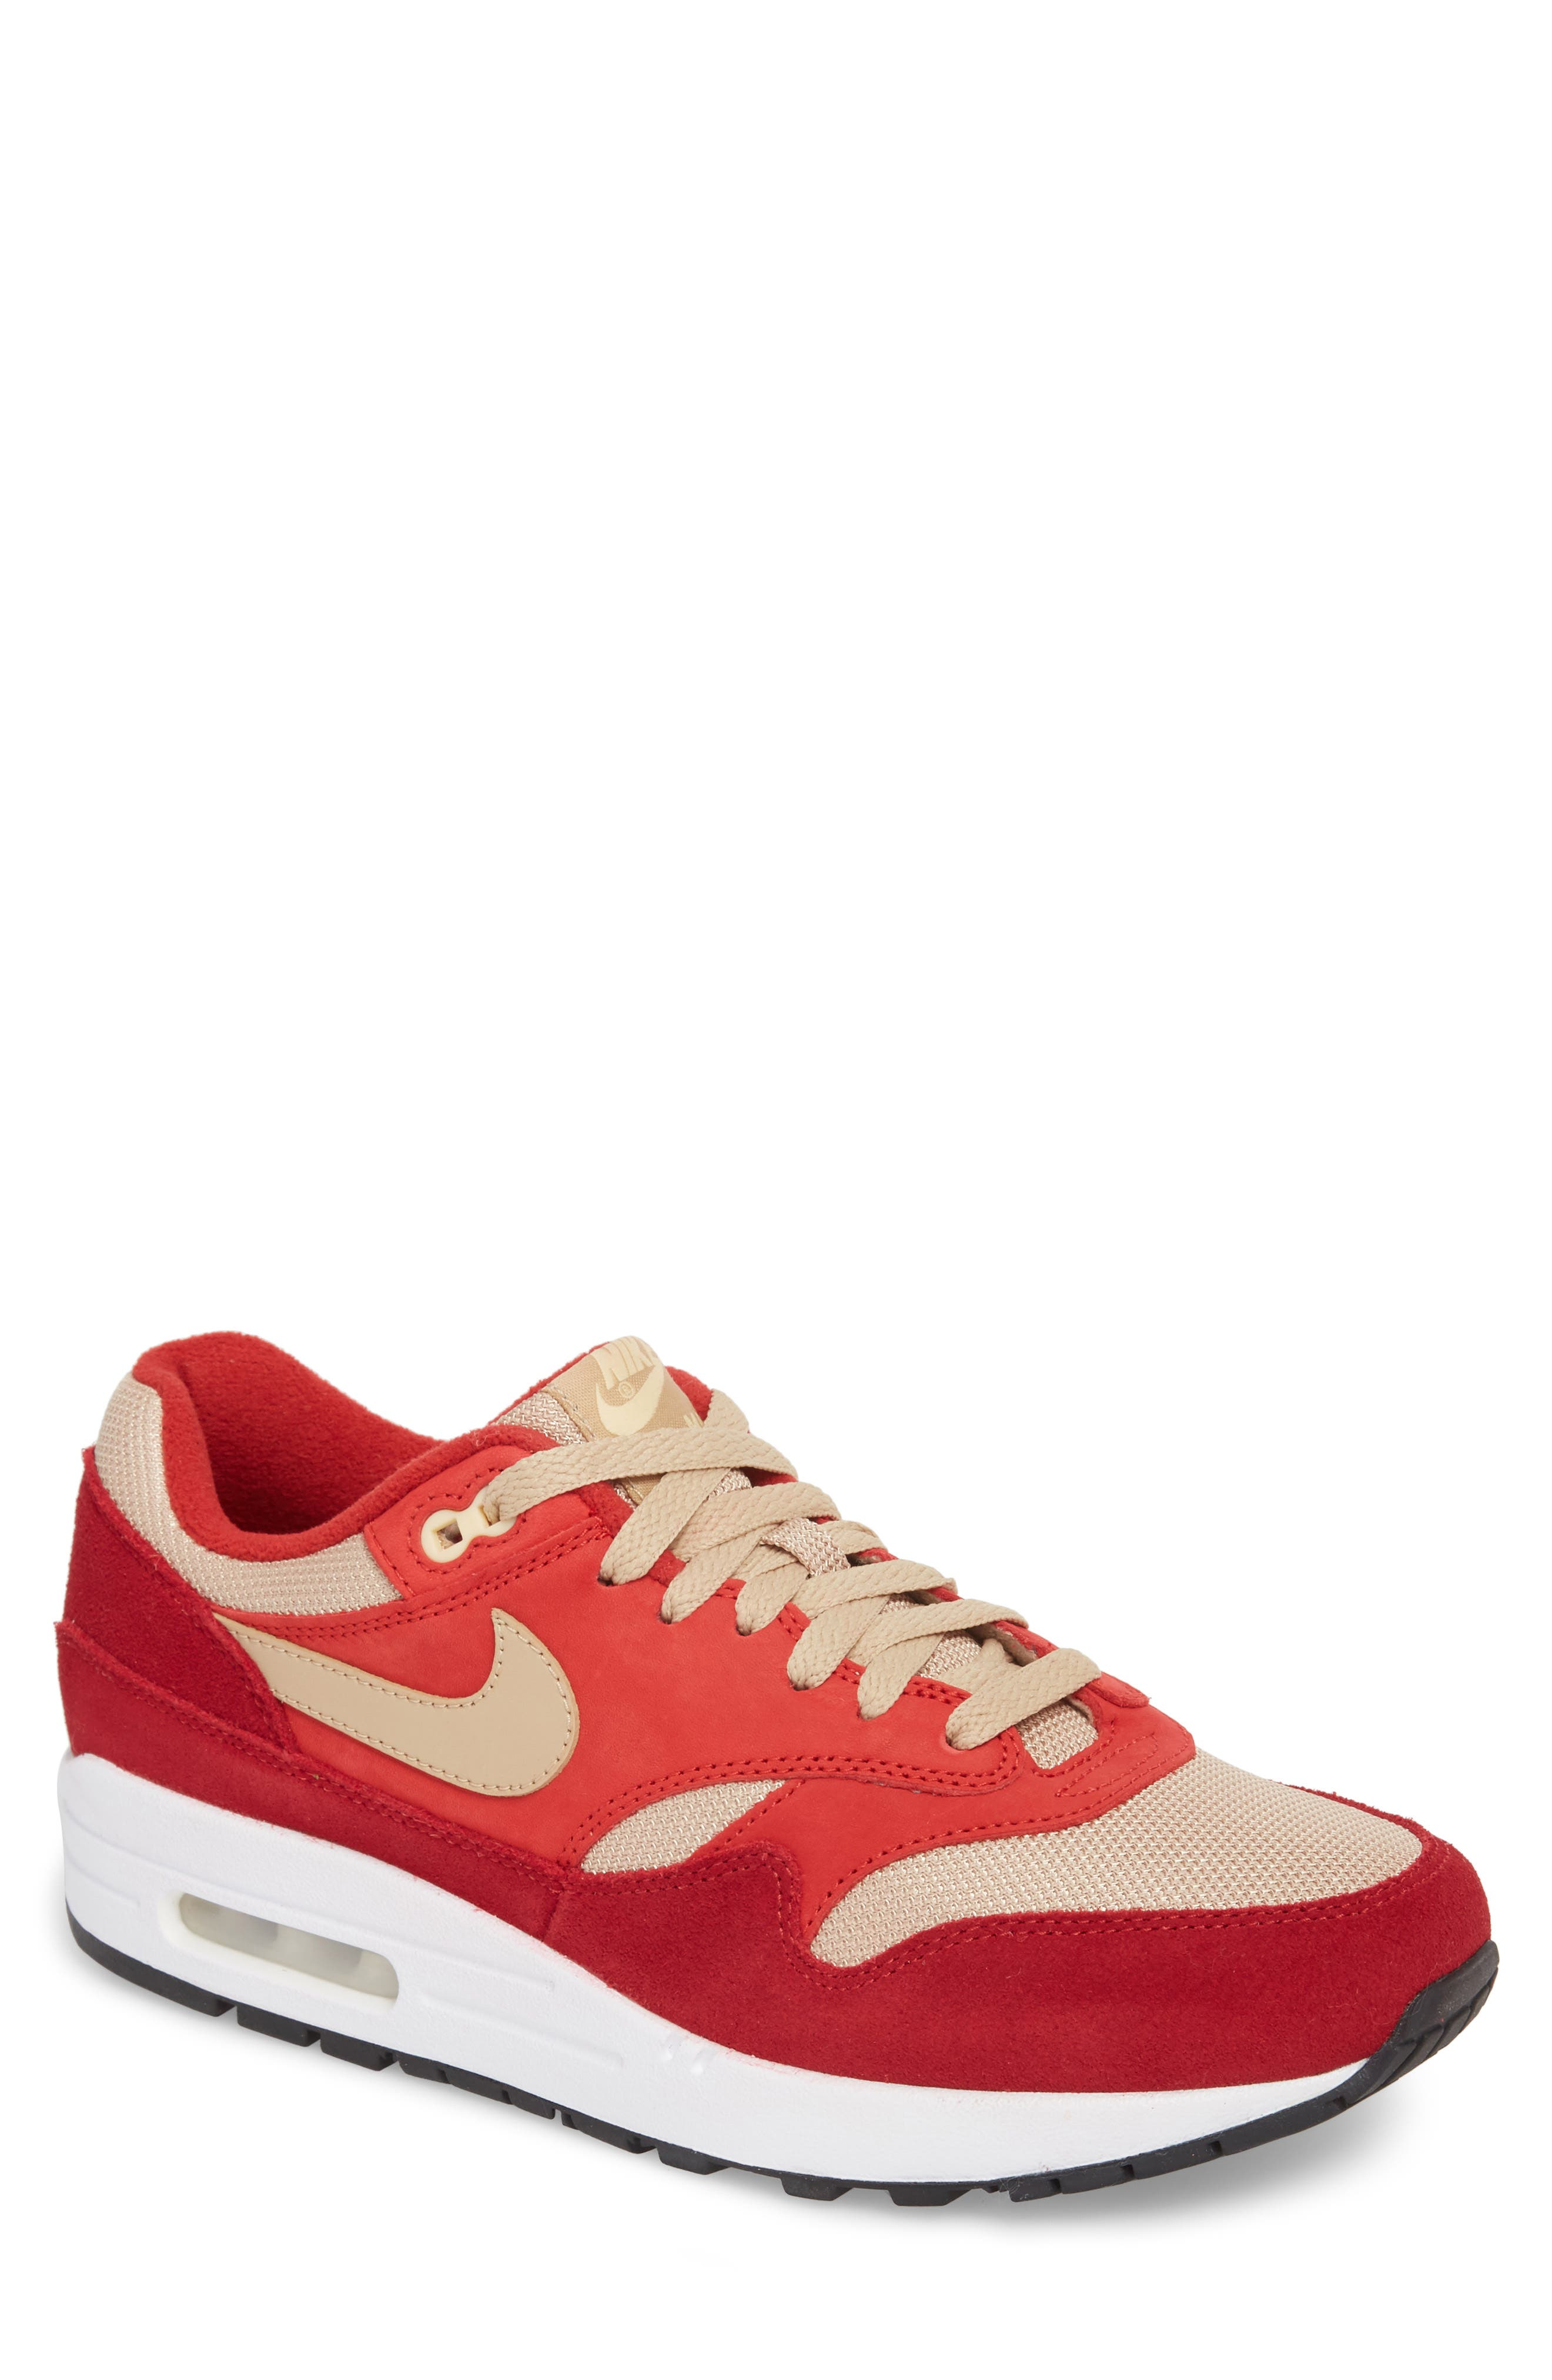 Nike Air Max 1 Premium Retro Sneaker (Men)